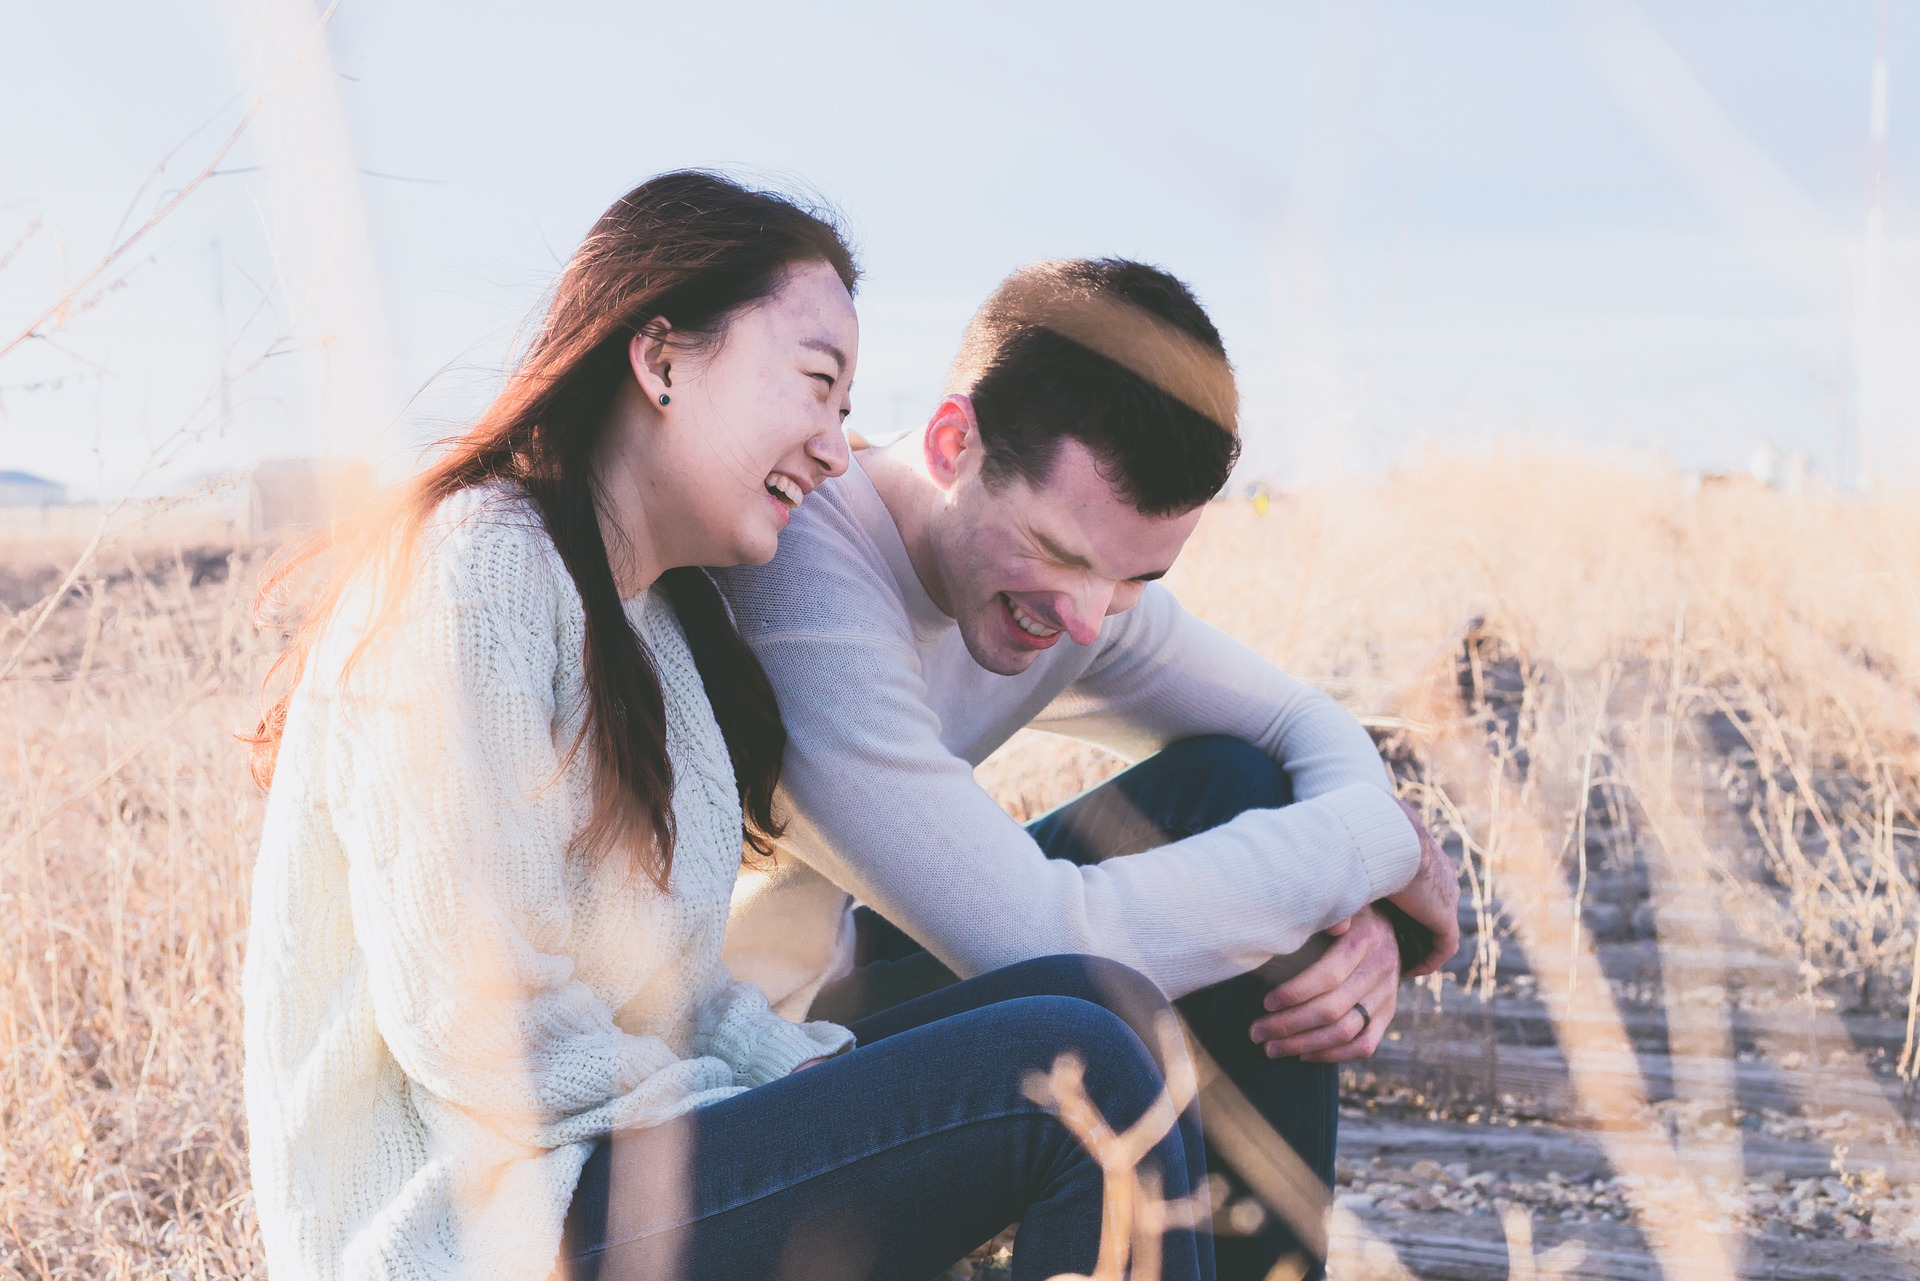 essay on building healthy relationships Beyond intractability essays negotiators build personal relationships with additional insights into the establishment of personal relationships are offered.